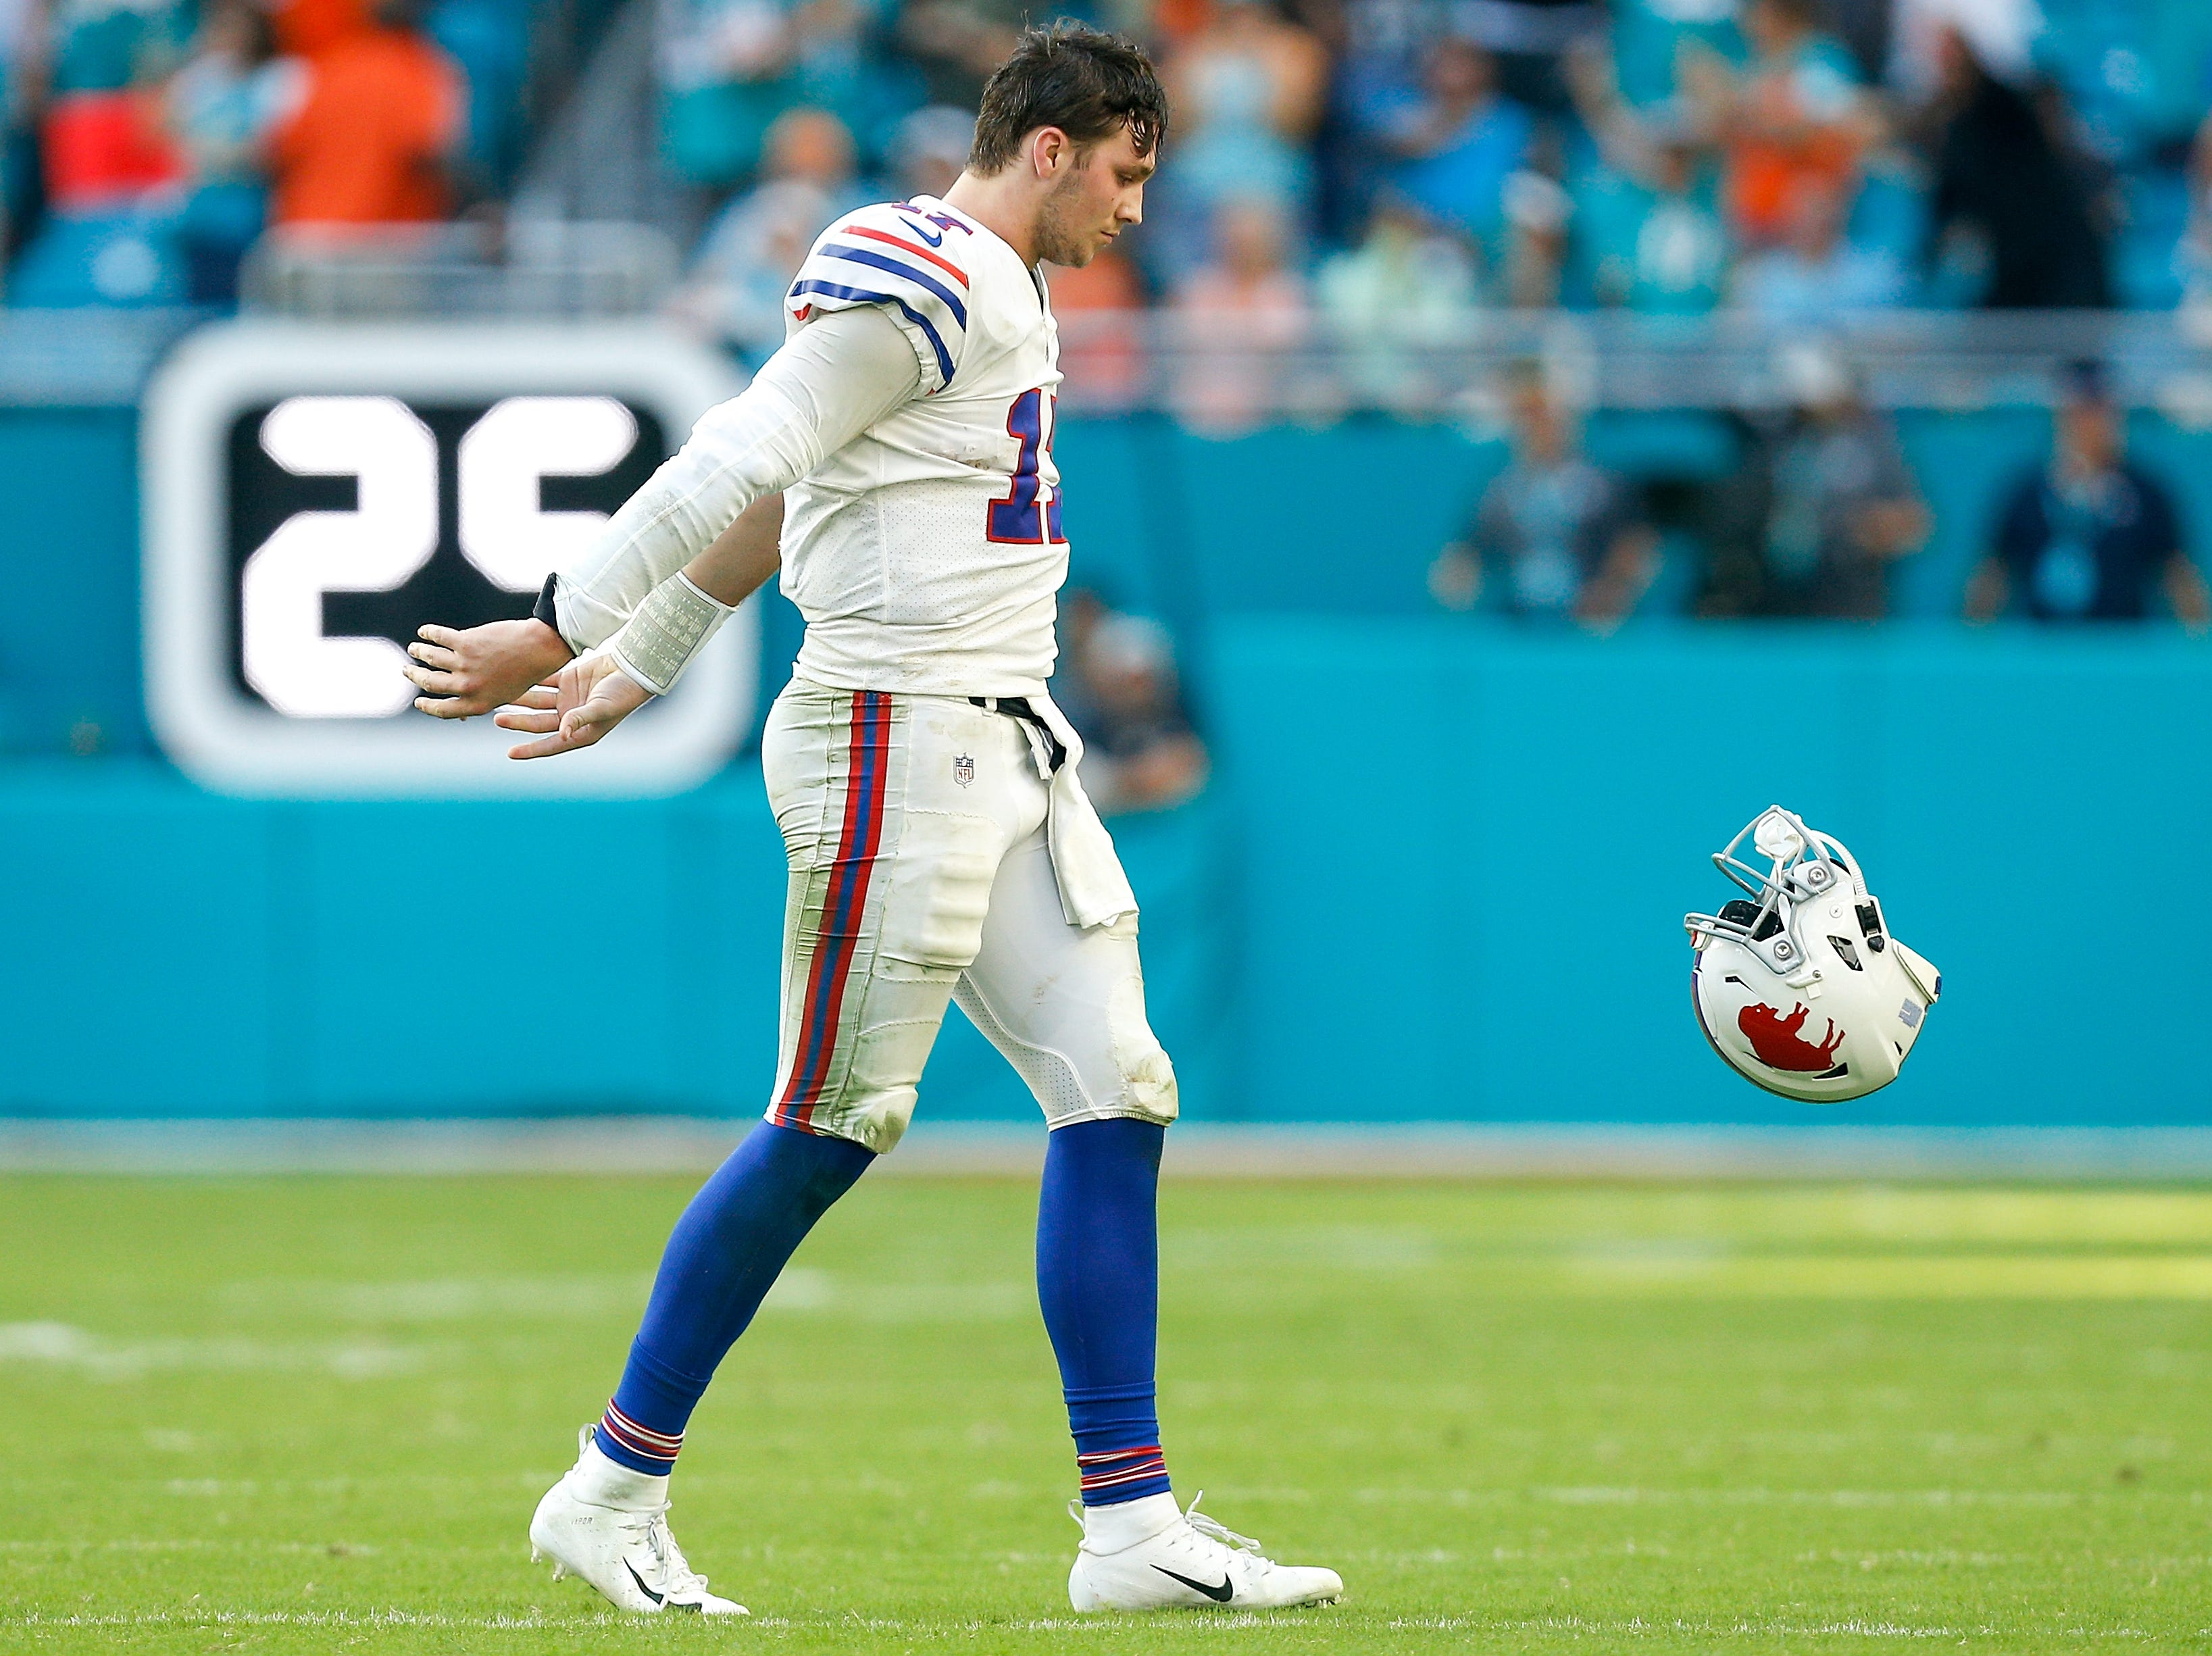 MIAMI, FL - DECEMBER 02:  Josh Allen #17 of the Buffalo Bills throws his helmet after a dropped pass against the Miami Dolphins during the closing seconds of the game at Hard Rock Stadium on December 2, 2018 in Miami, Florida.  (Photo by Michael Reaves/Getty Images)